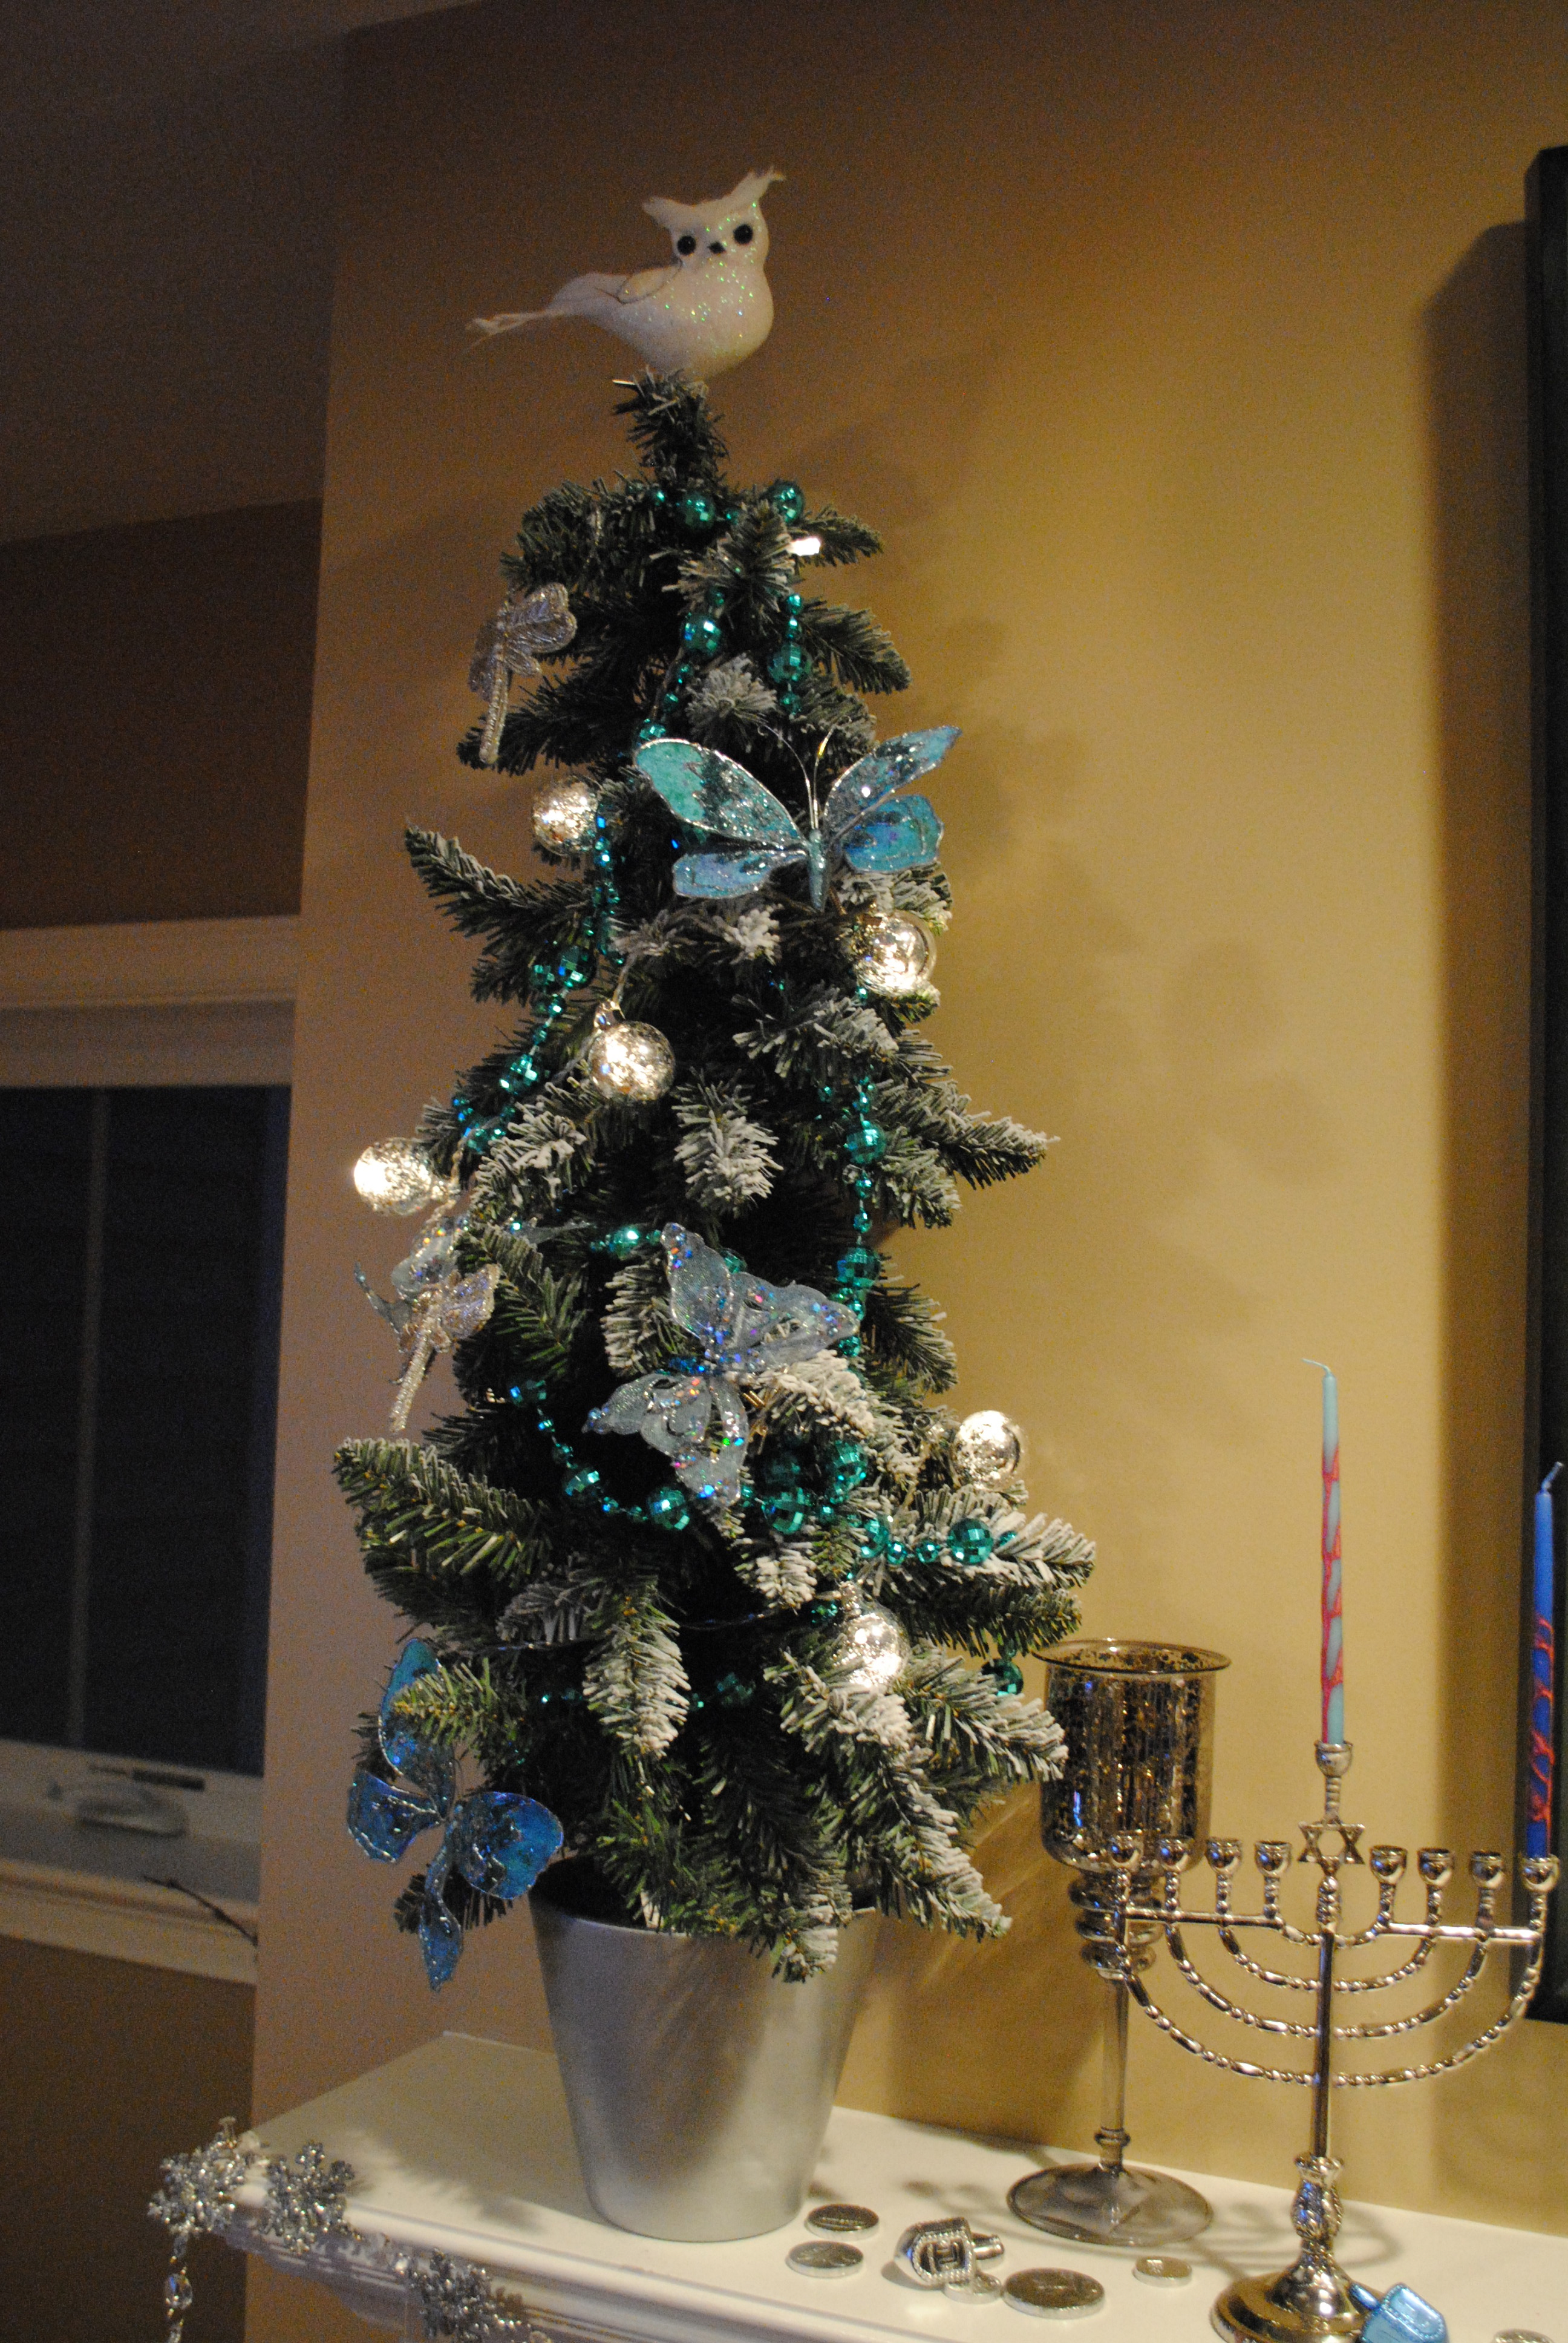 Hanukkah ornaments for a tree - We Flanked The Mantel With Two Snow Covered Trees In Silver Pots We Added The Blue Beads Some Blue And Sliver Glittery Butterflies Some Dazzling